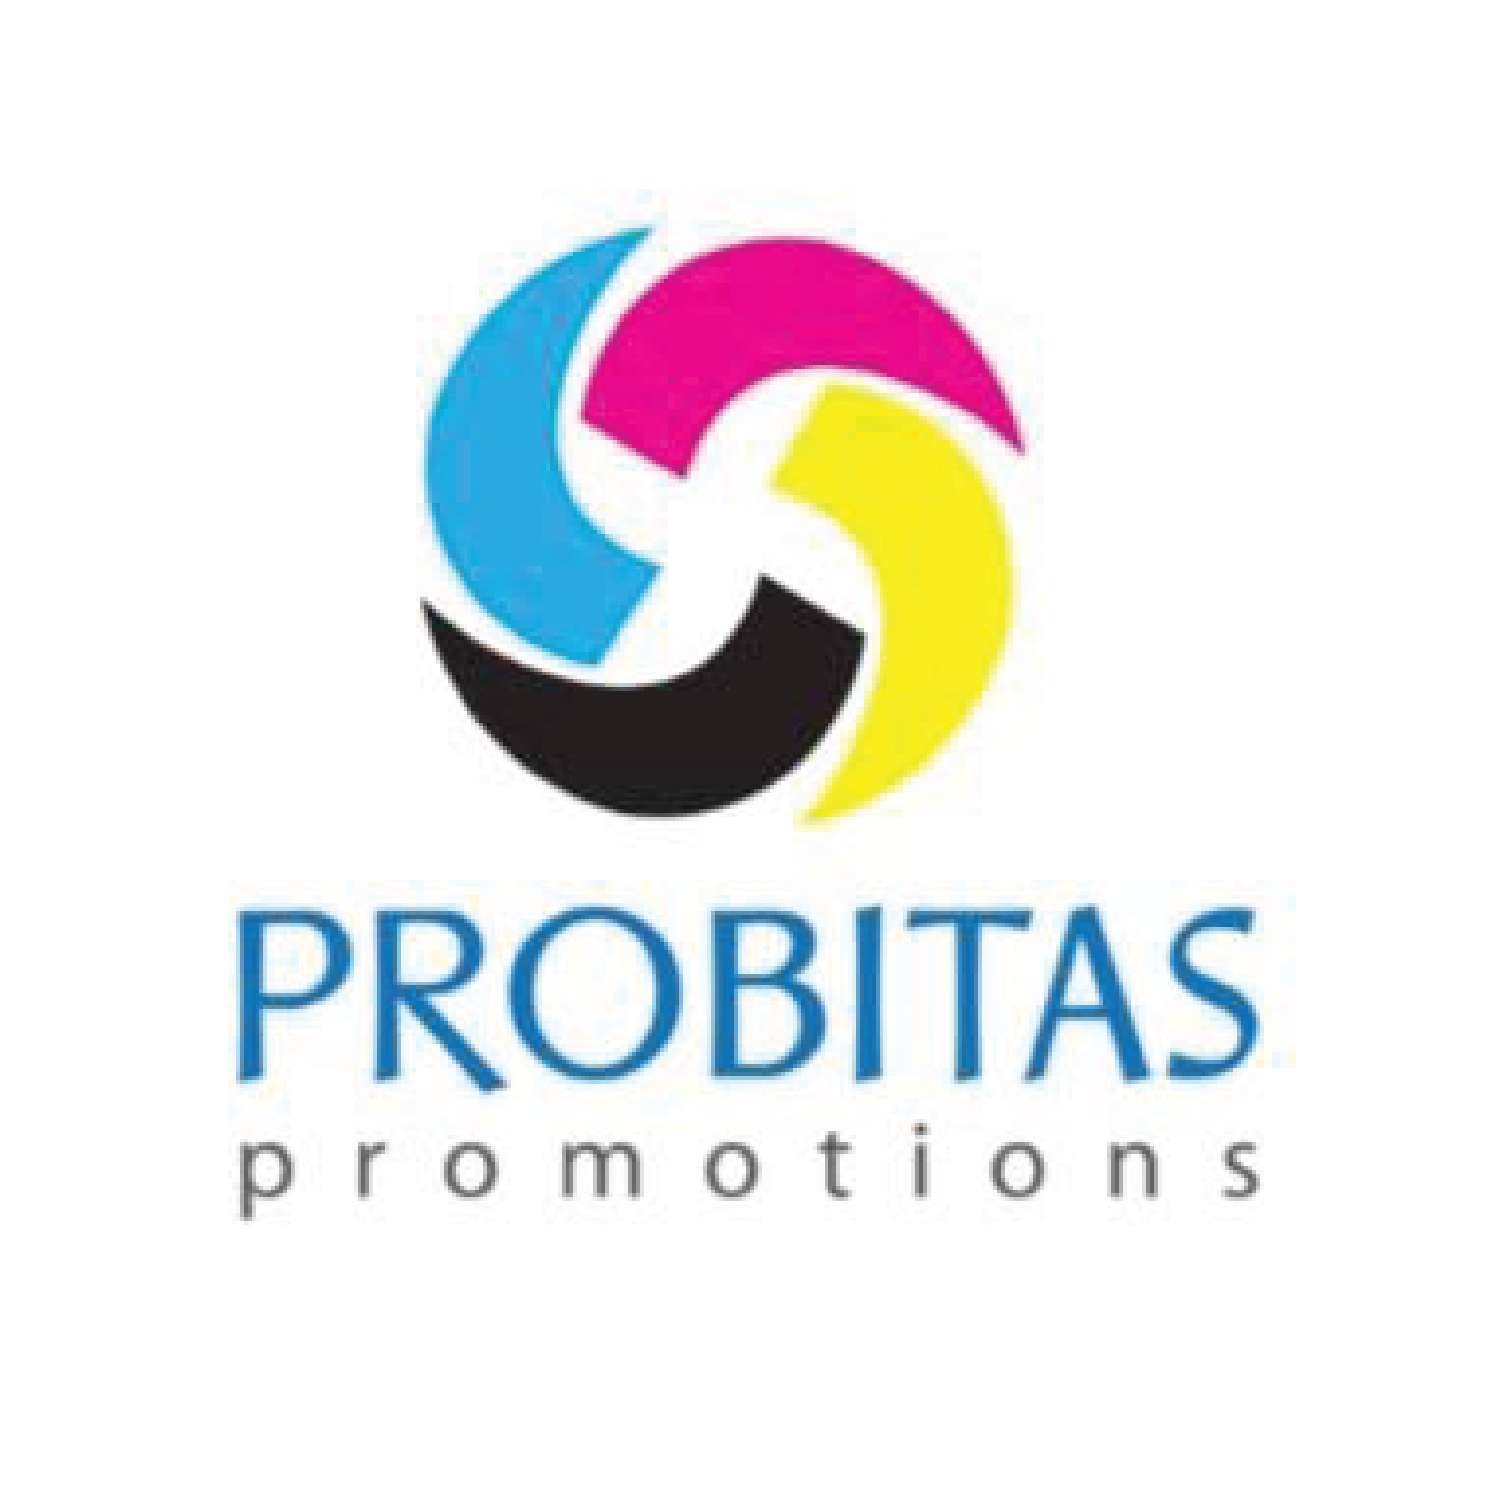 Probitas Promotions   1123 N 42nd St   Grand Forks, ND 866-776-7924